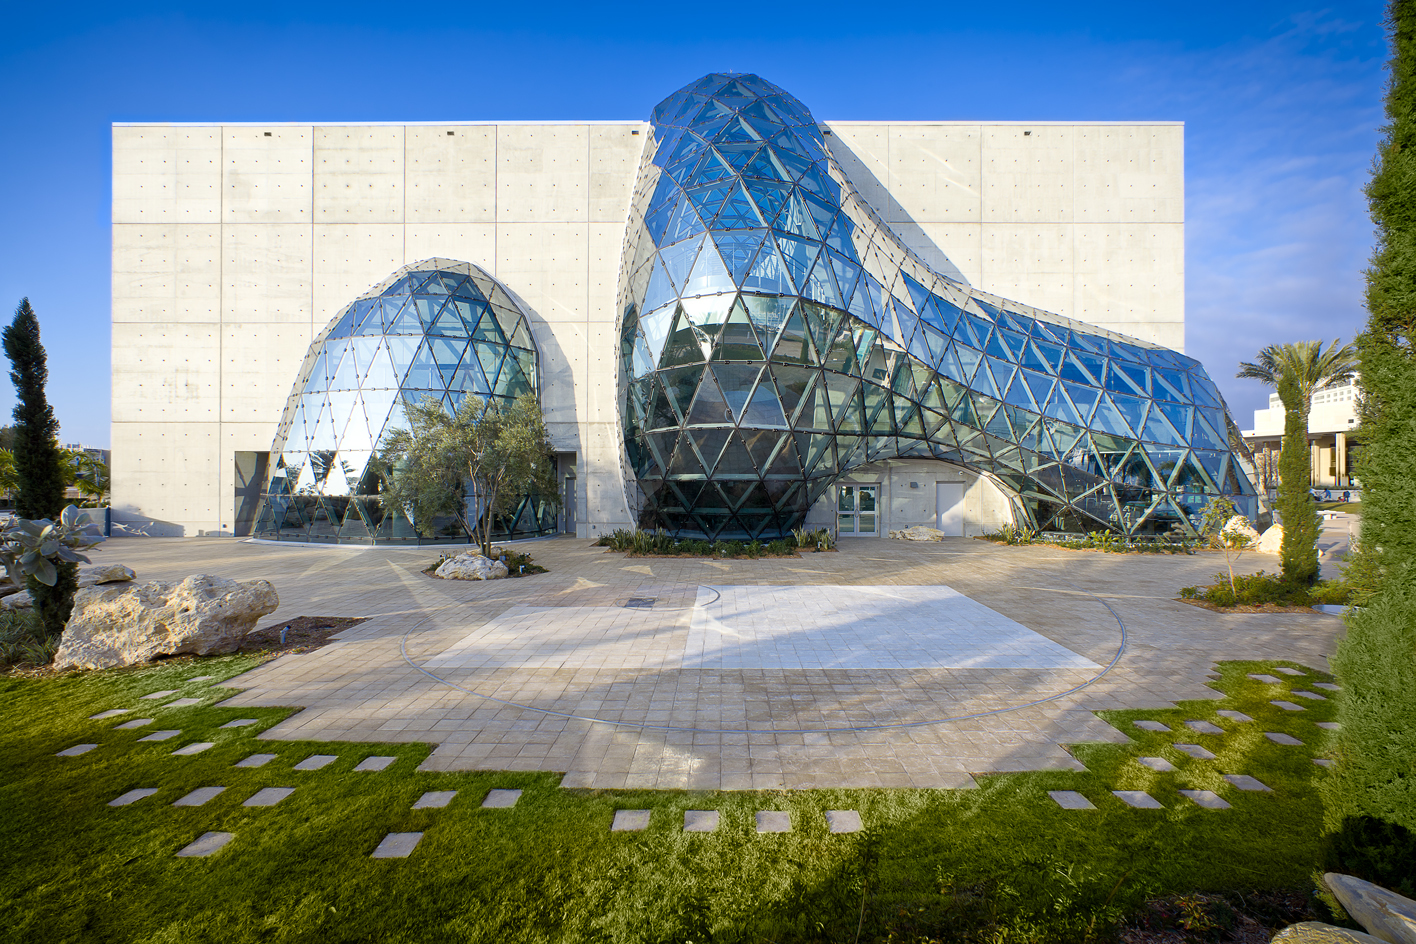 Concrete and a steel and glass bubble for the Dalí Museum of St. Petersburg, Florida, by HOK